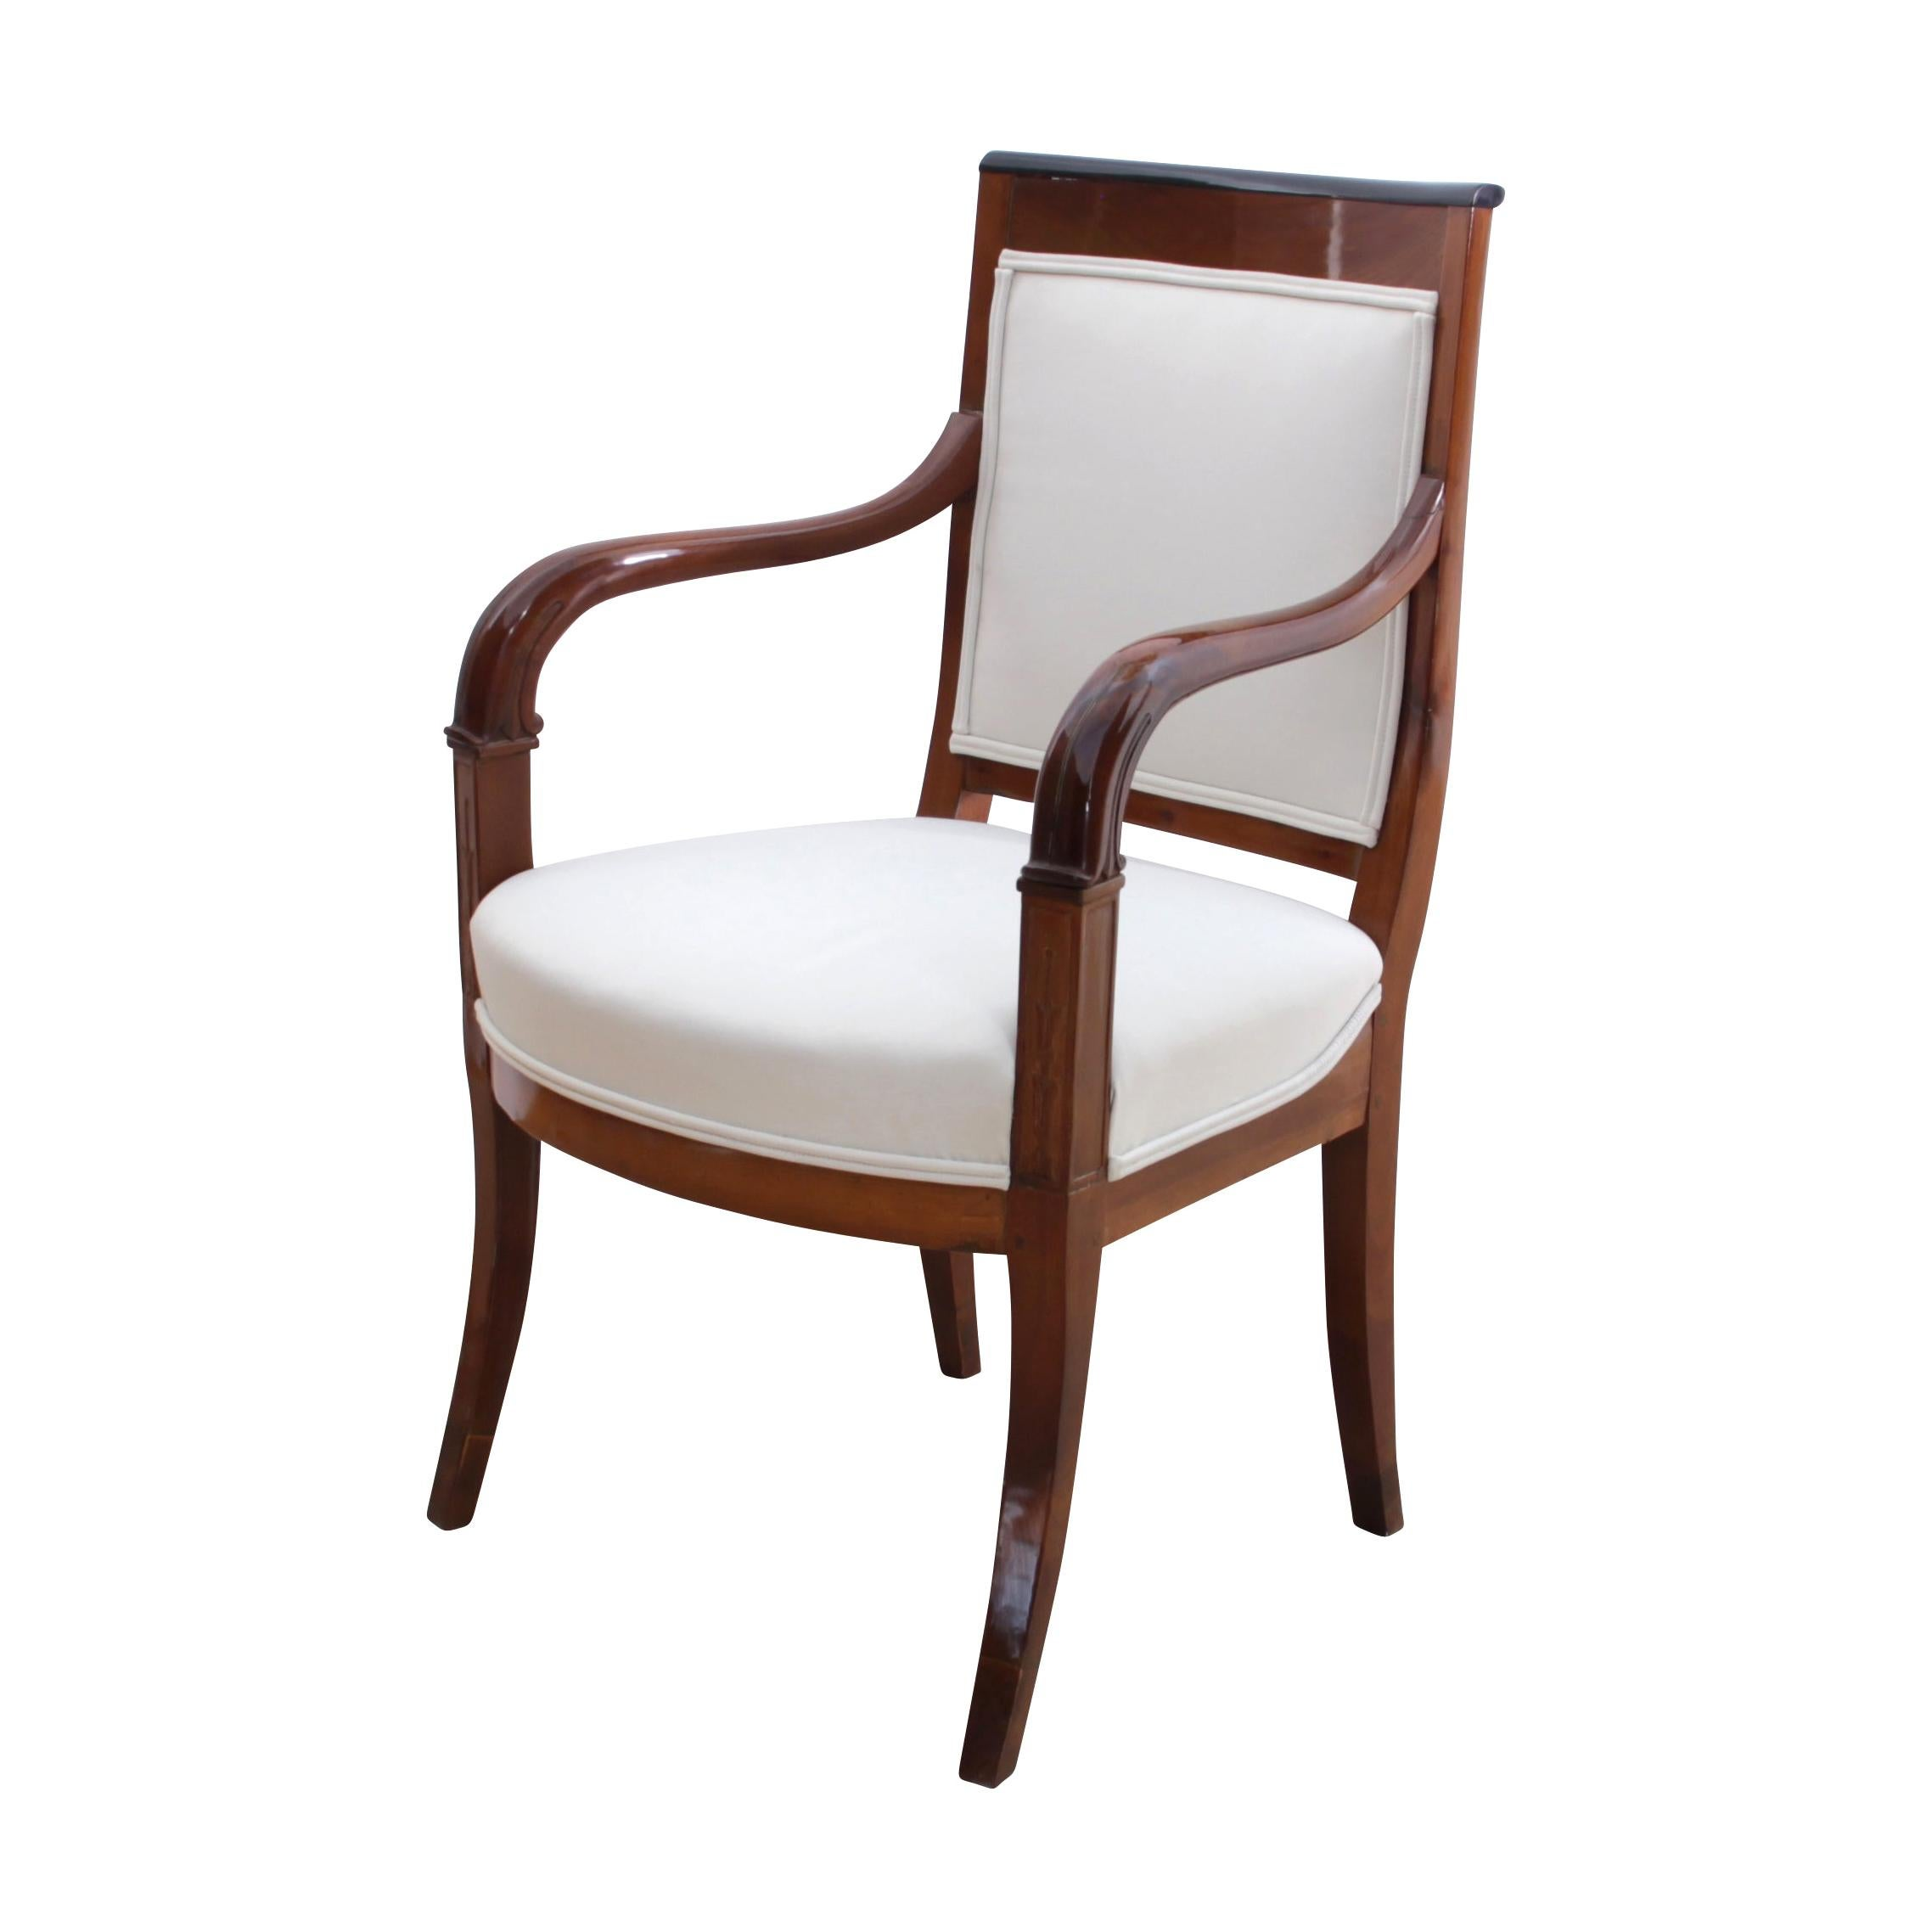 Neoclassical Armchair, Cherry Solid Wood with Carvings, France circa 1820